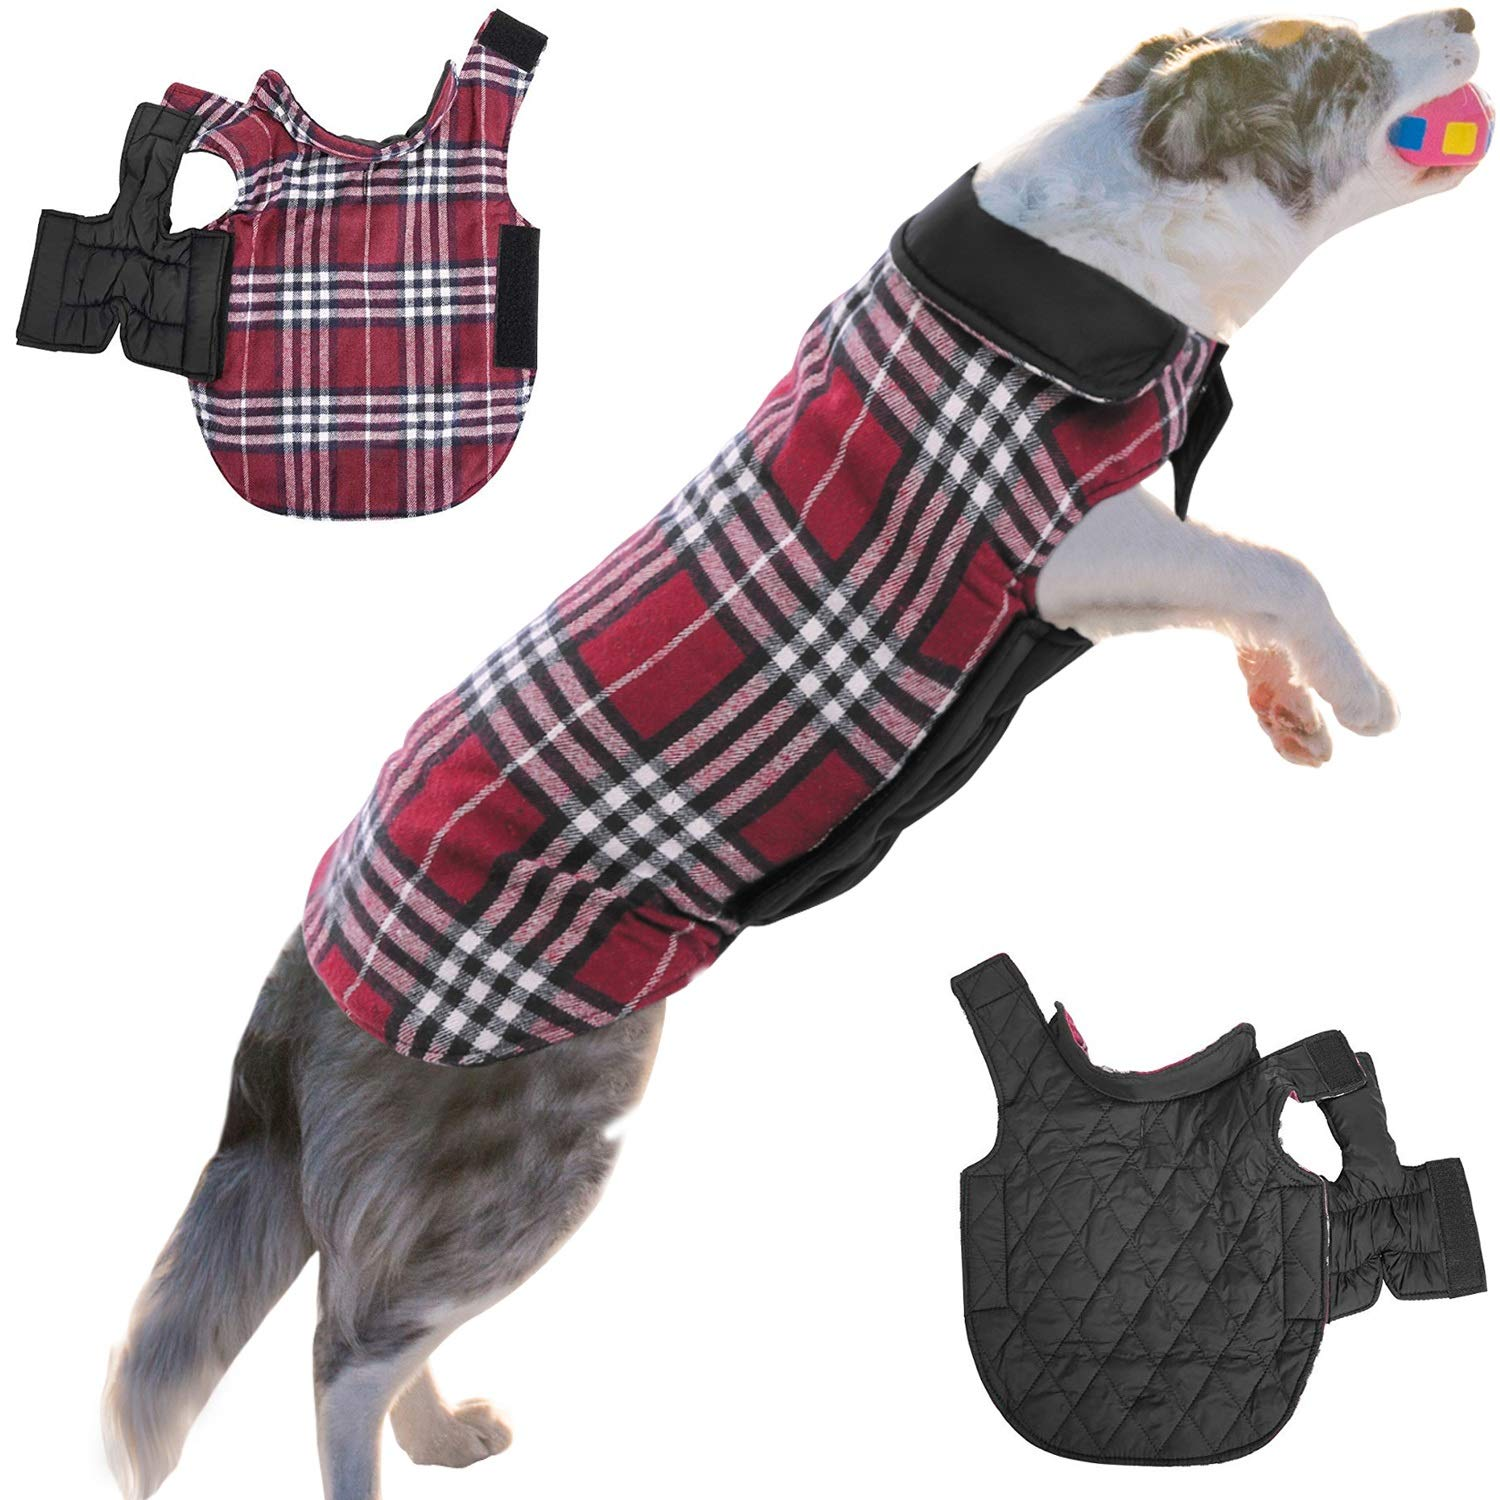 Red XS(Back 10.63'' Neck 12.59'' Chest 13.39-14.96'') Red XS(Back 10.63'' Neck 12.59'' Chest 13.39-14.96'') ASENKU Dog Coat Dog Jacket for Winter Cold Weather Windproof Waterproof Dog Clothes Reversible British Style Plaid Pet Dog Warm Vest for Small Medi